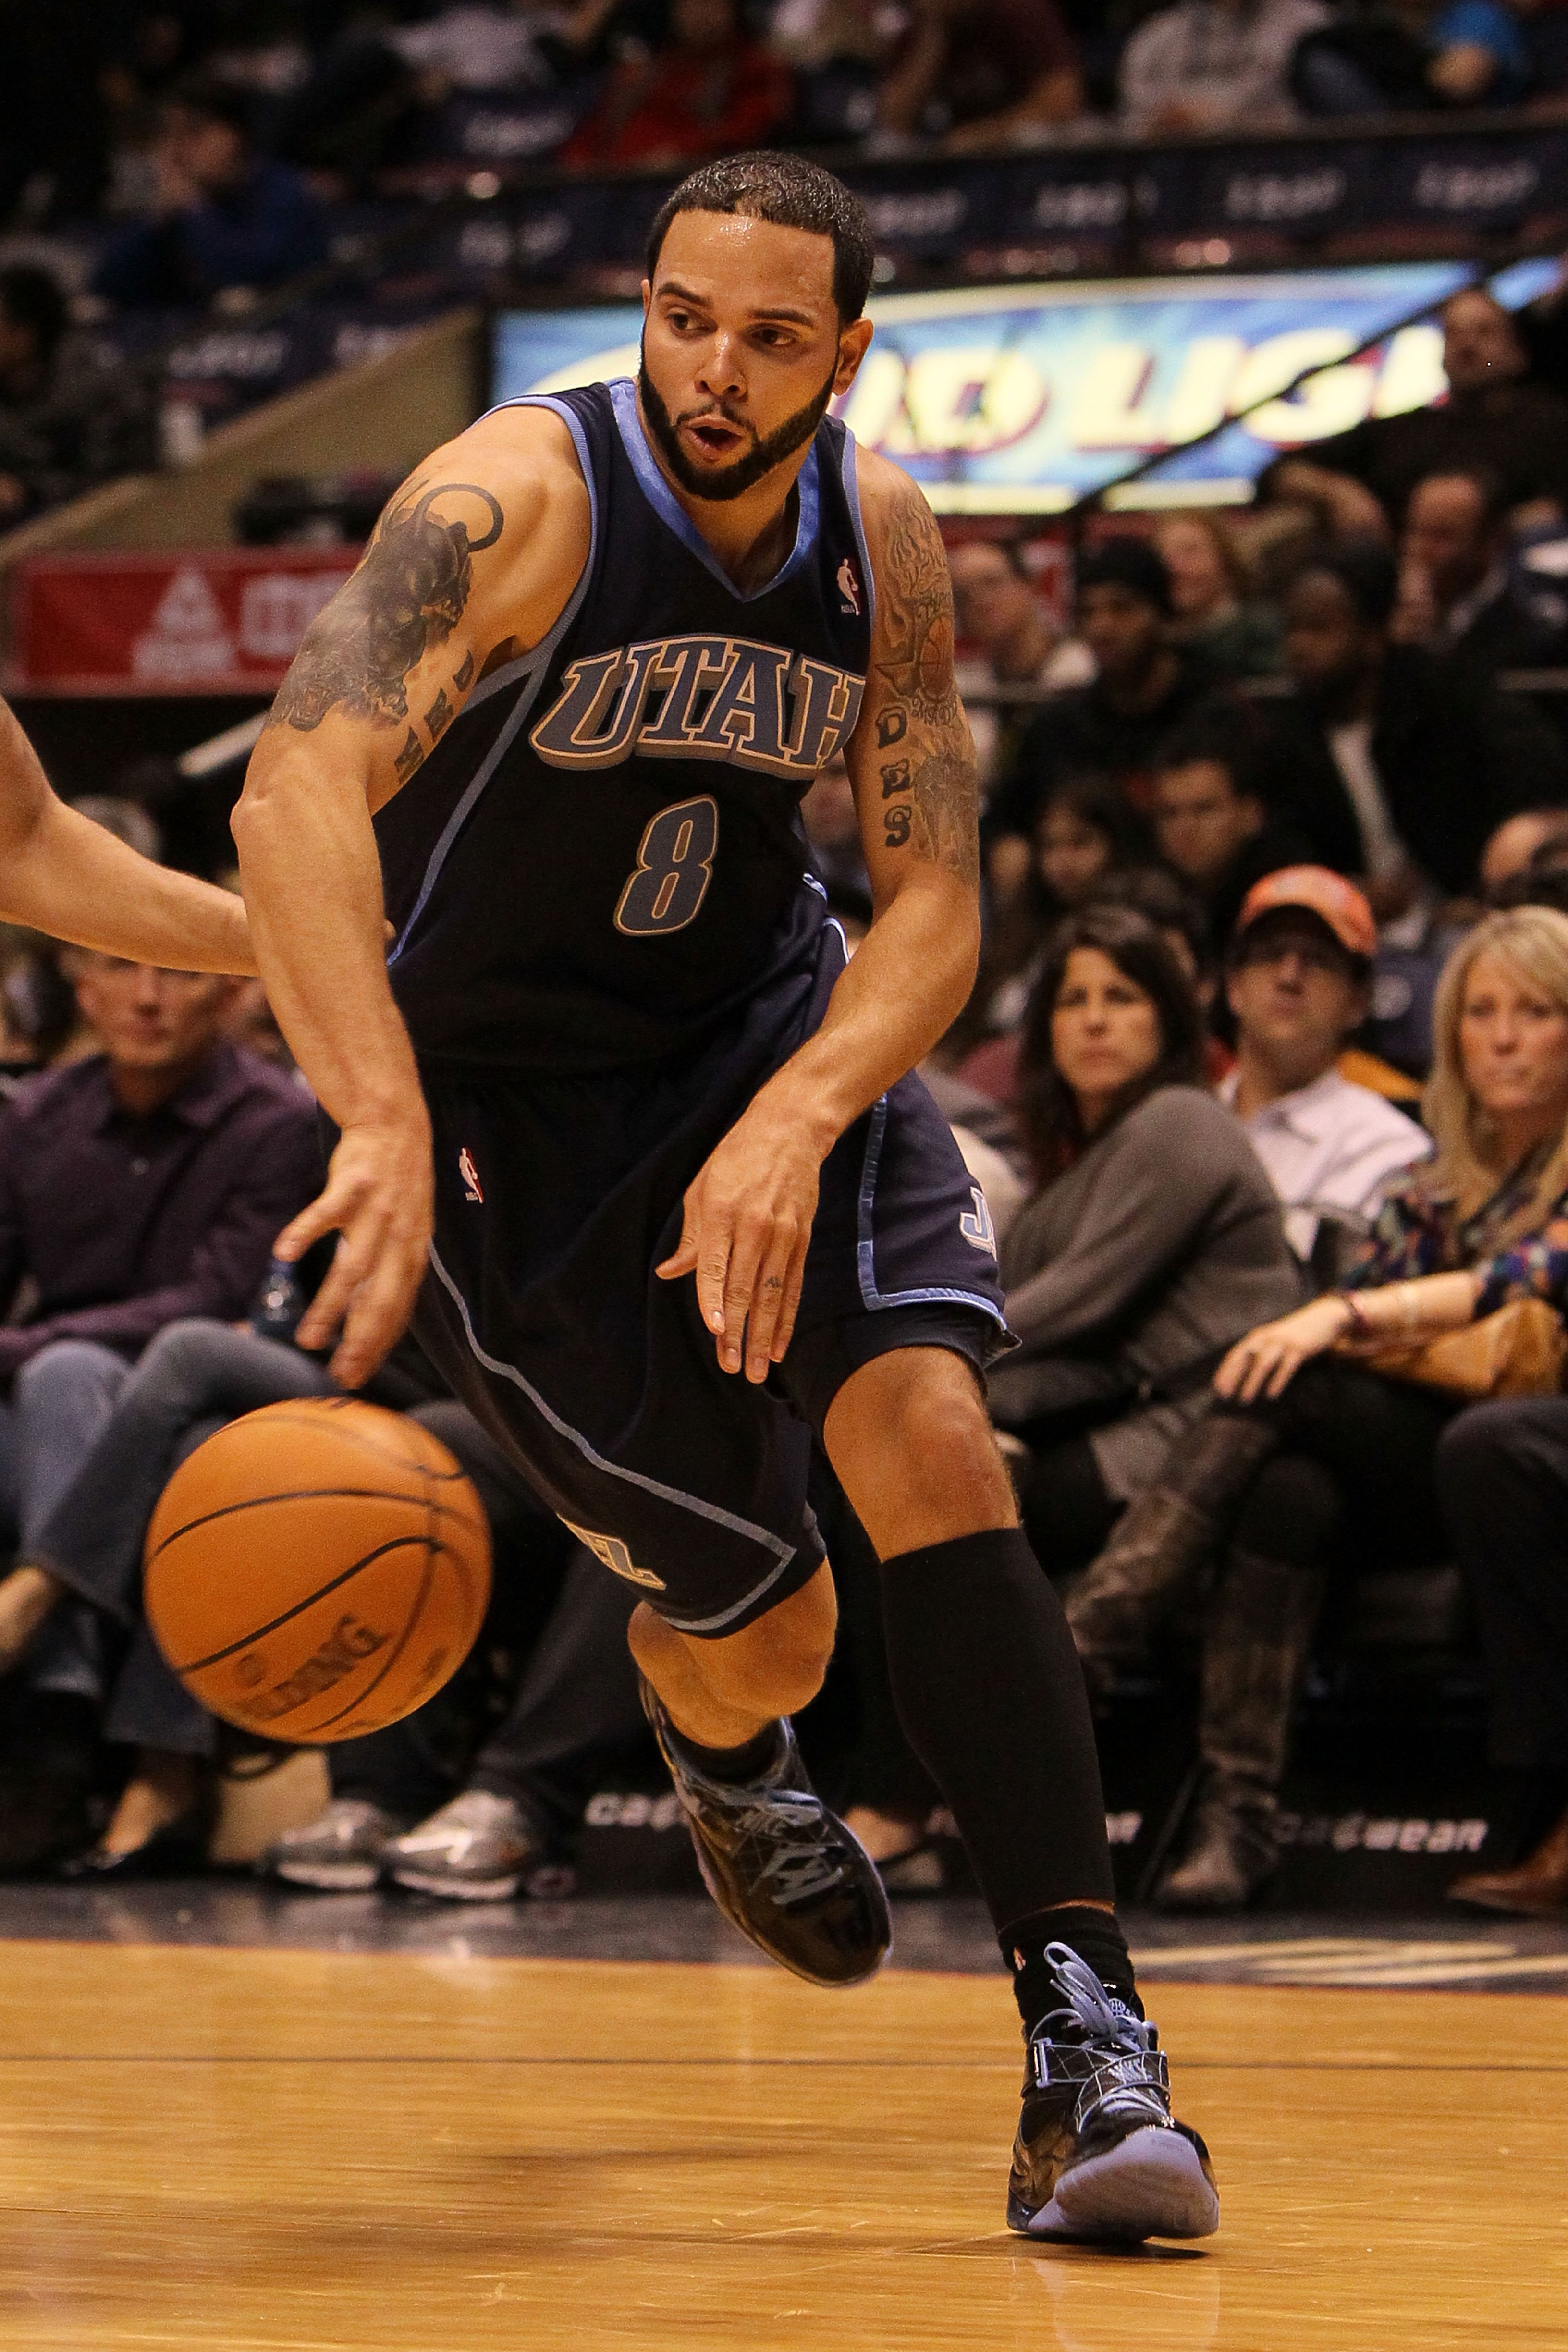 EAST RUTHERFORD, NJ - DECEMBER 16:  Deron Williams #8 of The Utah Jazz in action against the New Jersey Nets during their game on December 16th, 2009 at The Izod Center in East Rutherford, New Jersey.  NOTE TO USER: User expressly acknowledges and agrees